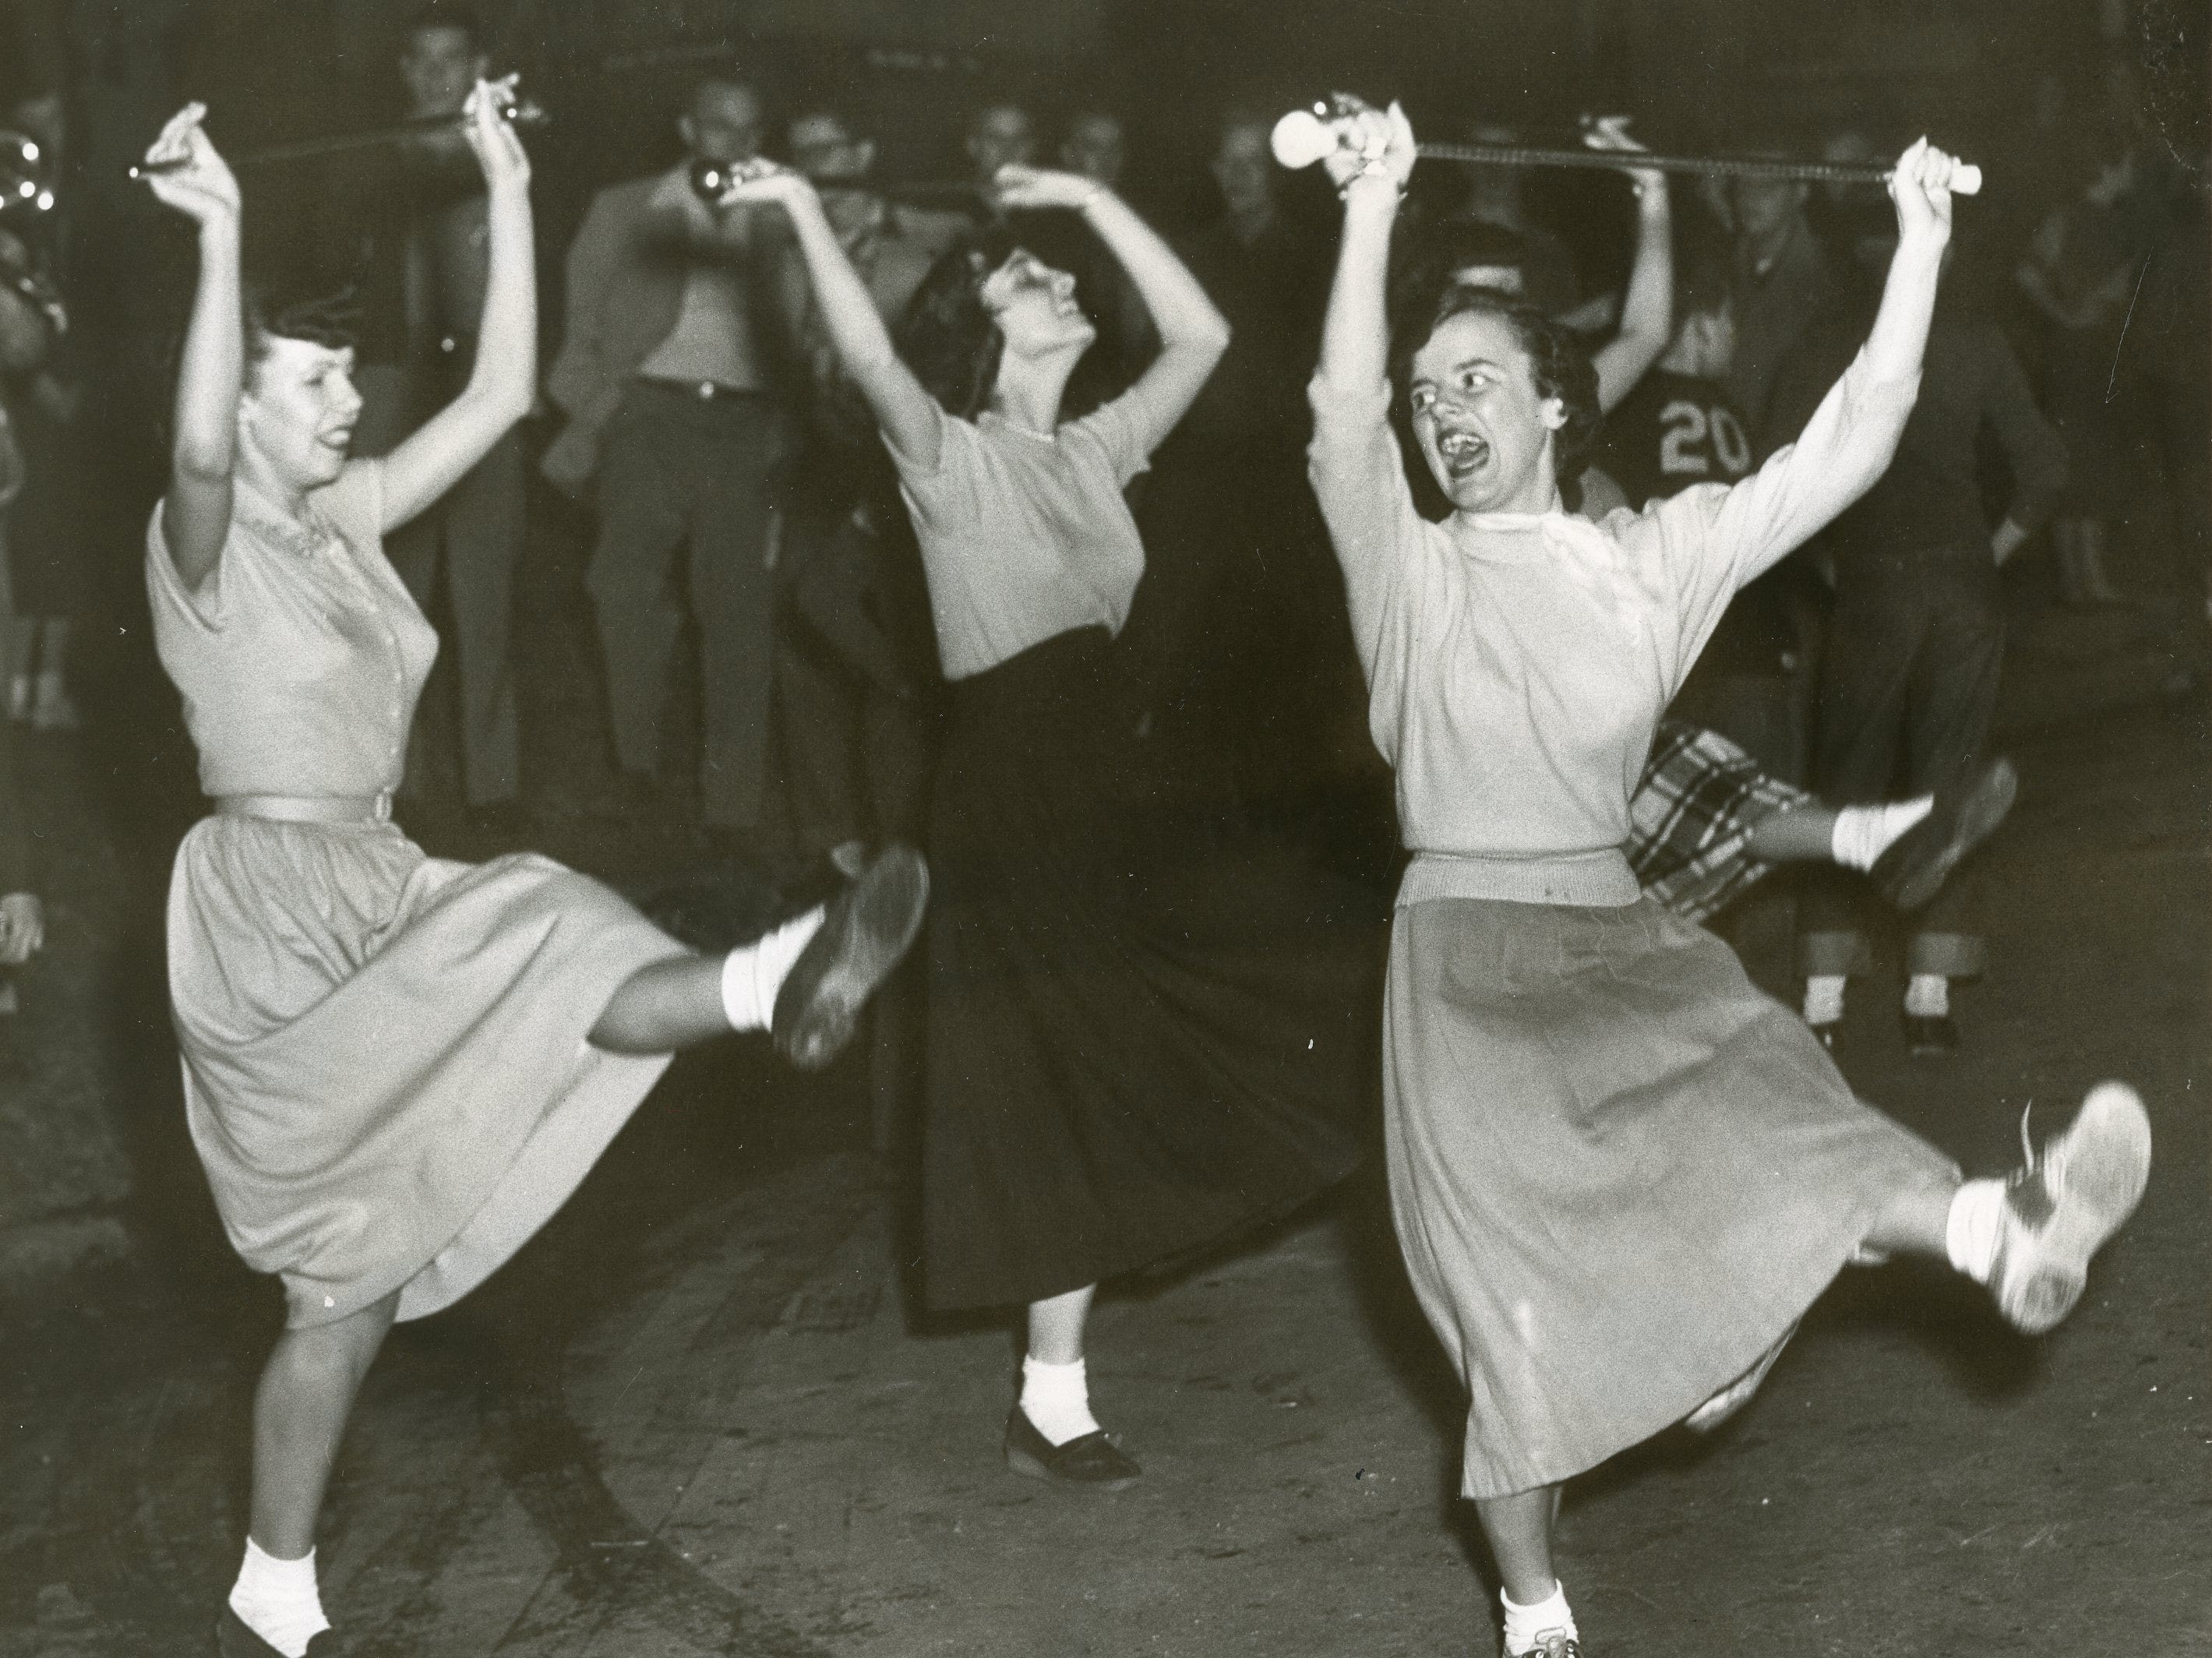 UT majorettes perform during a homecoming pep rally in this undated photo. Pictured are Dorothy Faye Brown, Mary Lee taylor and Barbara Adkisson.